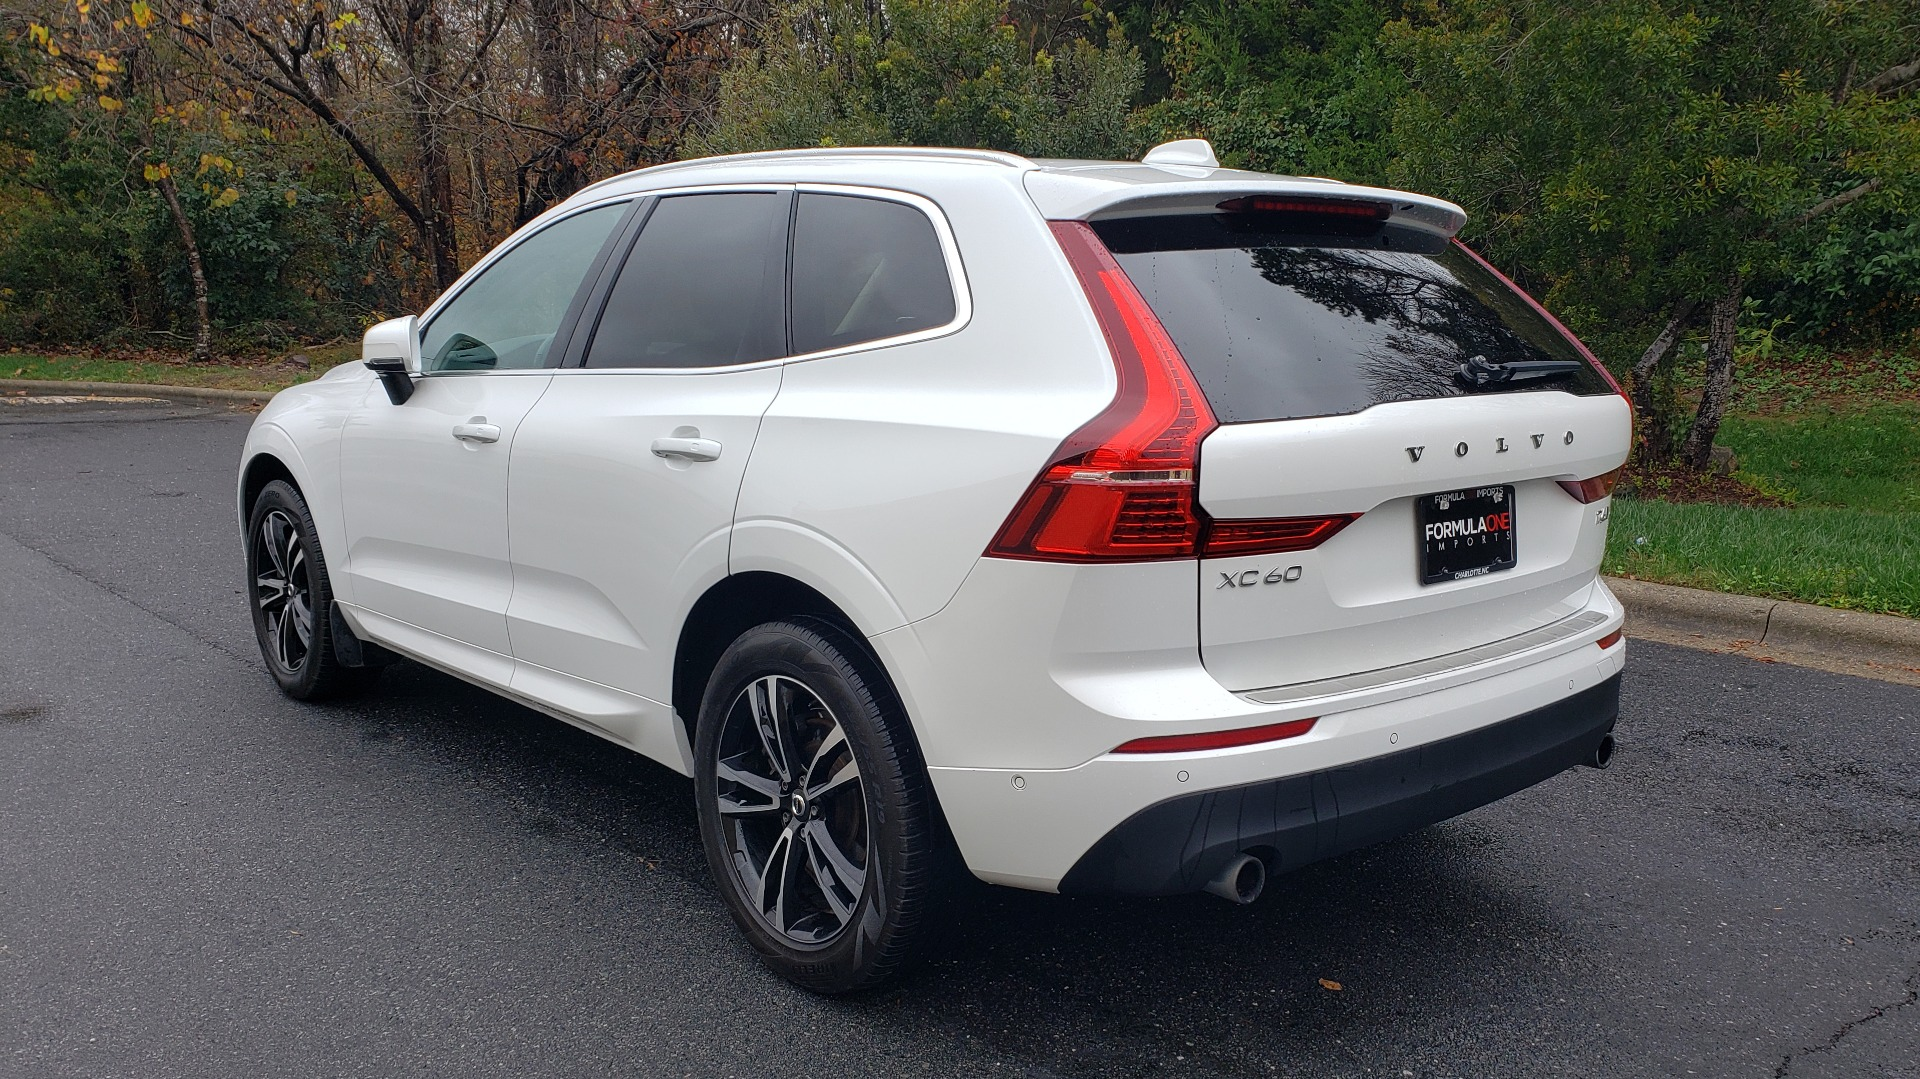 Used 2018 Volvo XC60 MOMENTUM AWD / NAV / SUNROOF / LKA / BLIS / PRK ASST for sale Sold at Formula Imports in Charlotte NC 28227 3